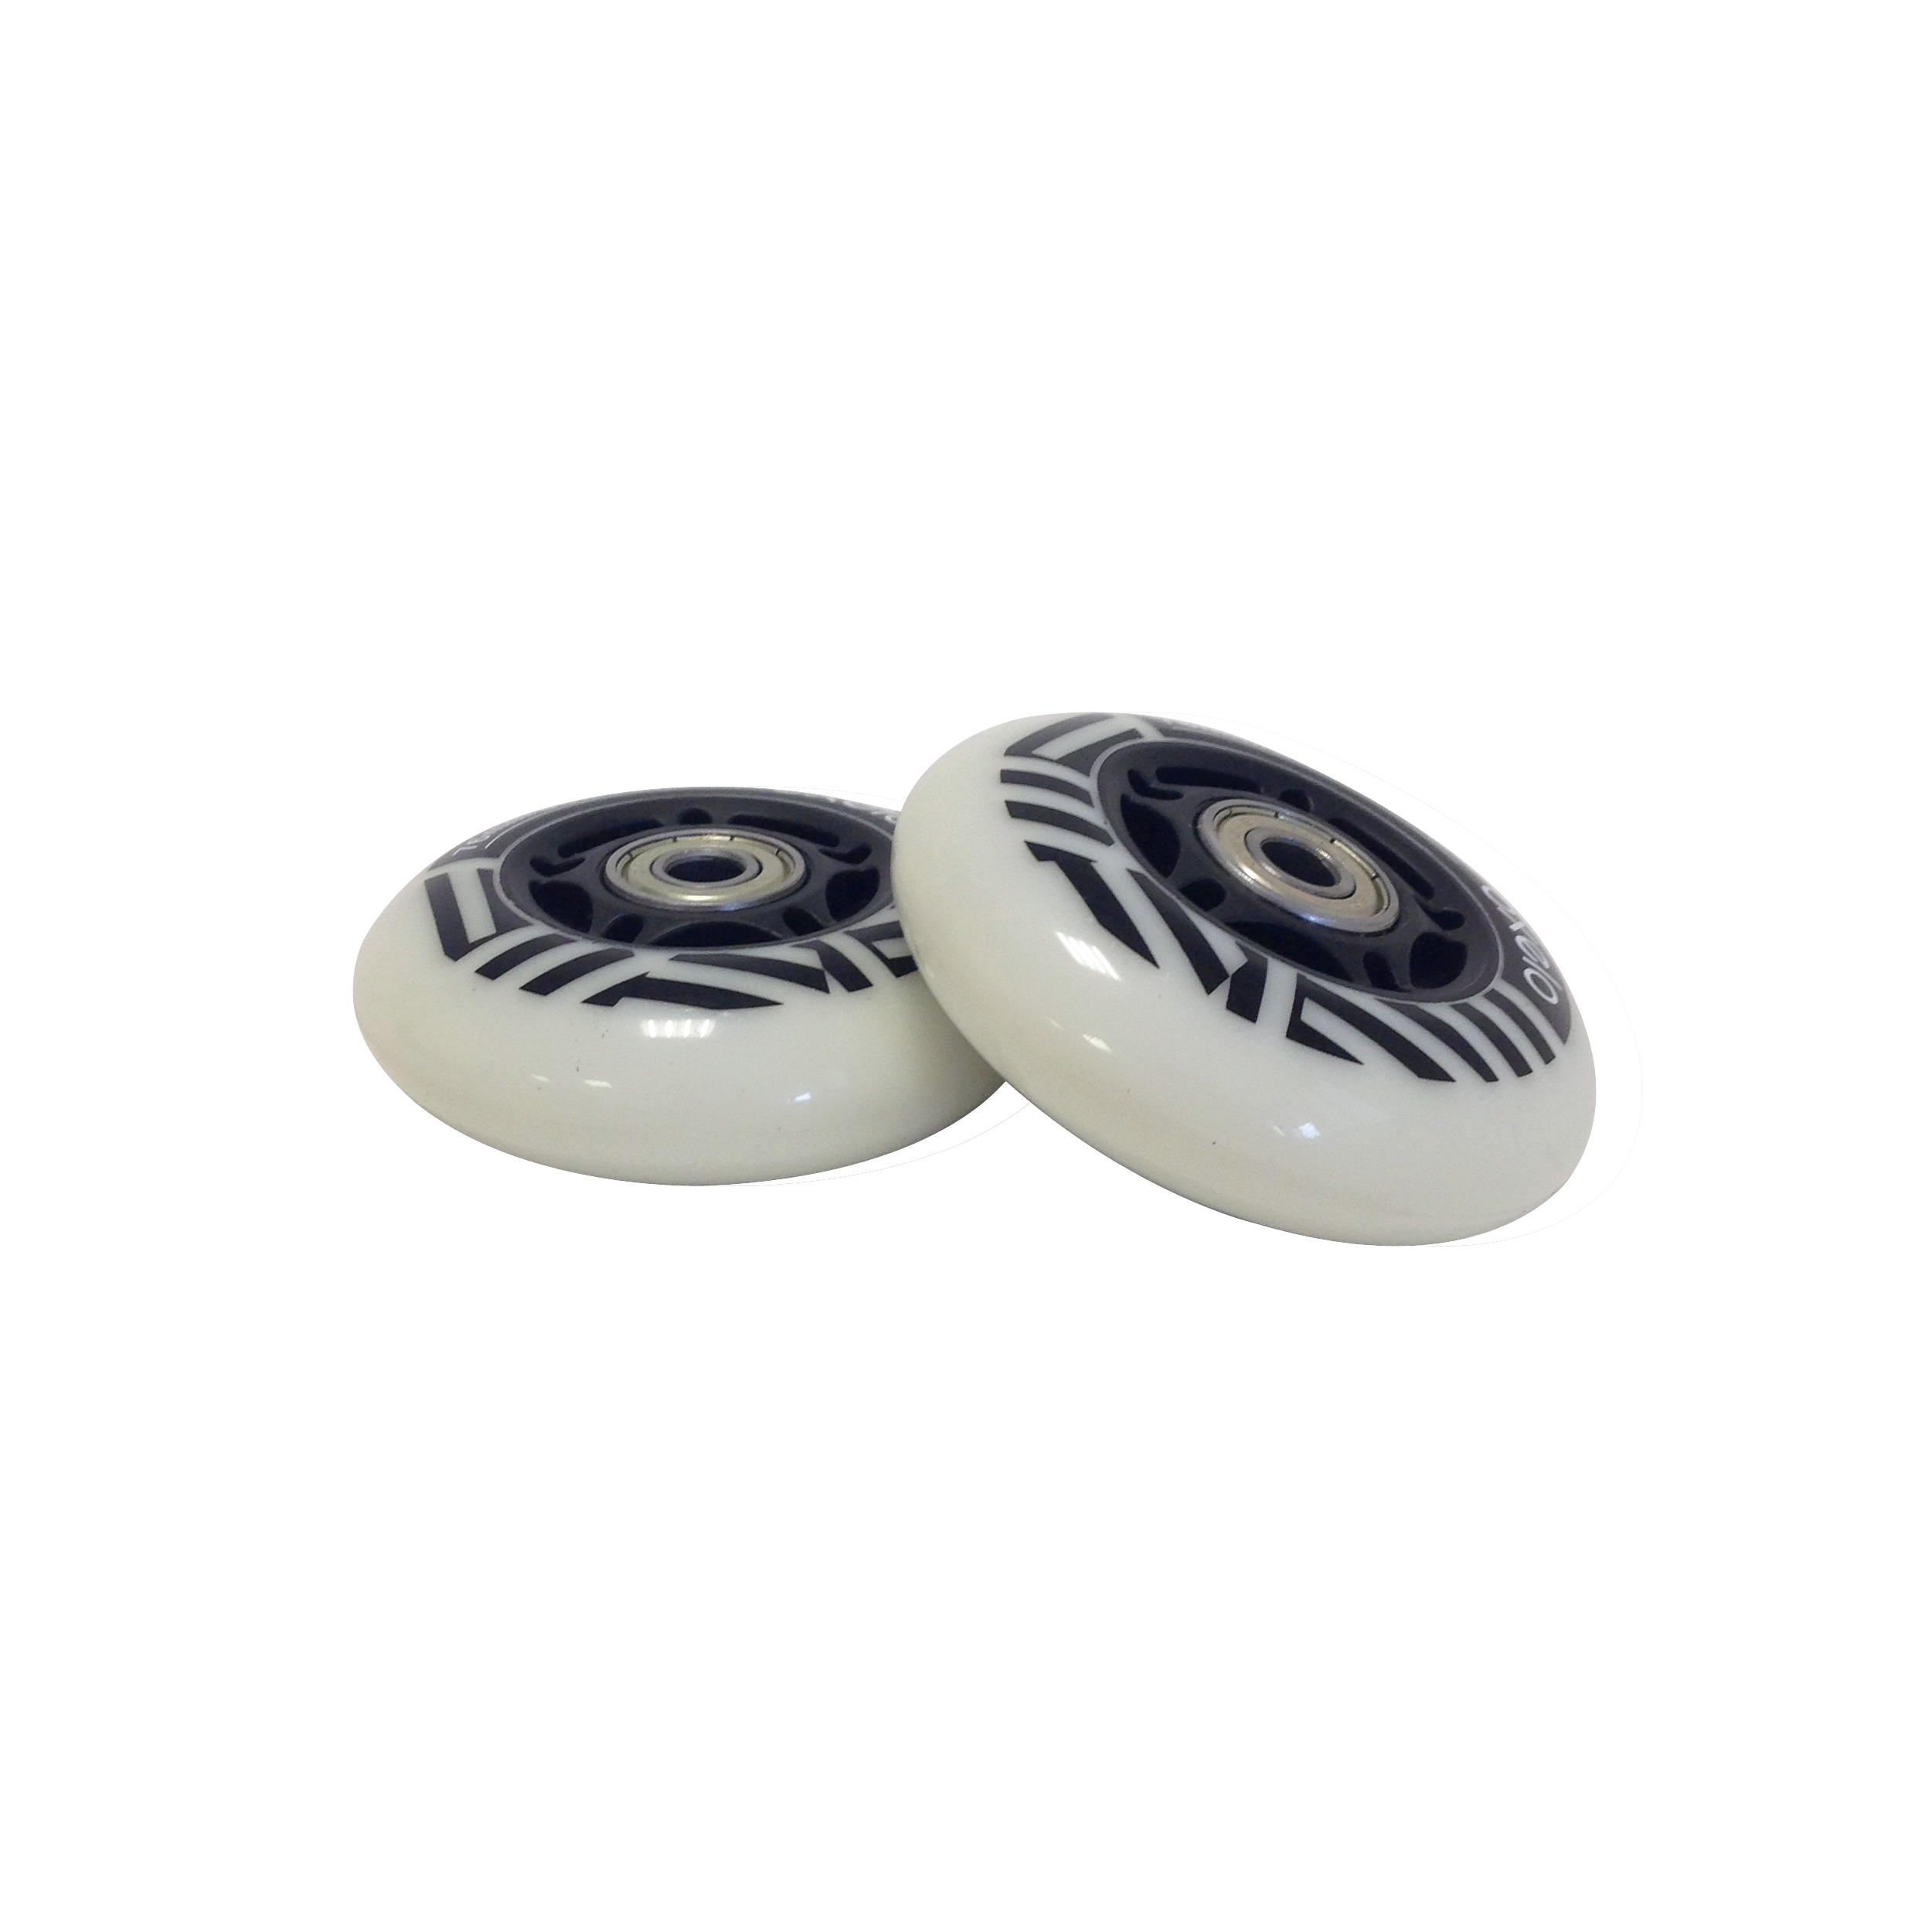 2 LIGHT-UP WAVEBOARD WHEELS